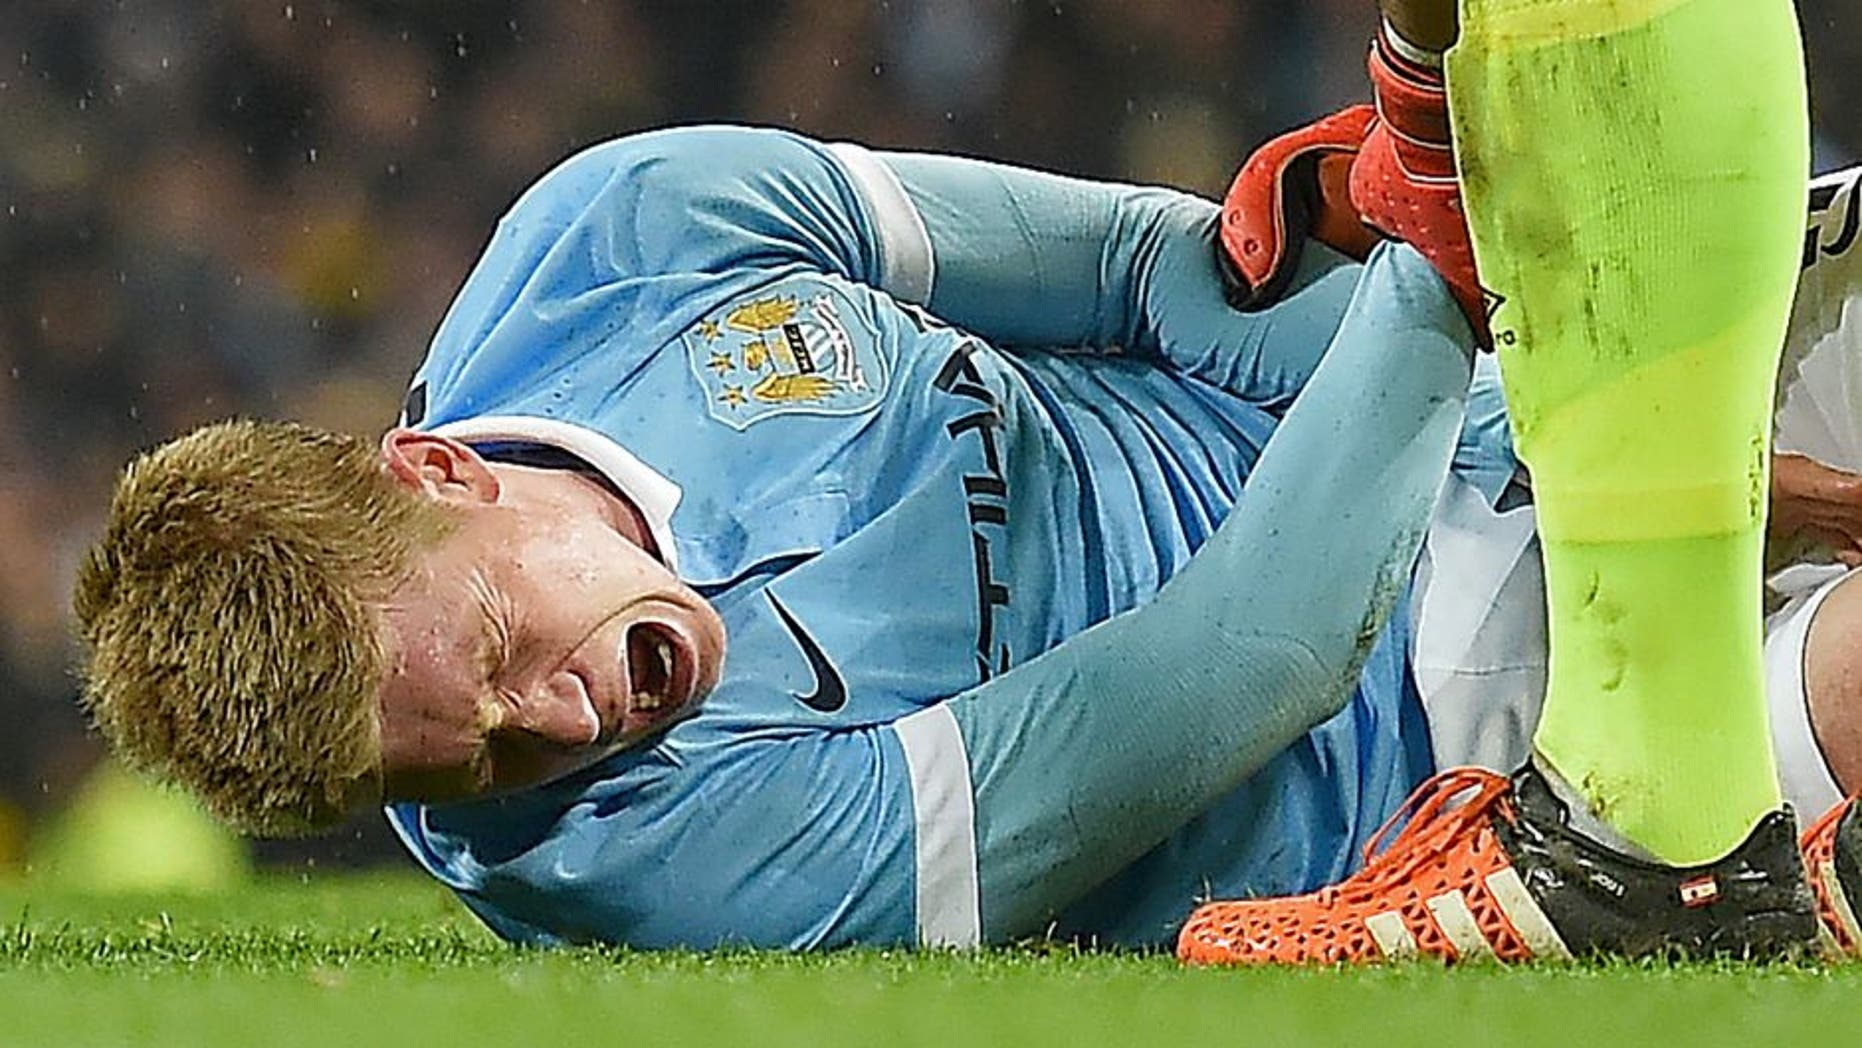 Manchester City's Belgian midfielder Kevin De Bruyne (L) reacts as he talks with Everton's Spanish goalkeeper Joel Robles before being stretchered off during the English League Cup semi-final second leg football match between Manchester City and Everton the Etihad Stadium in Manchester, north west England, on January 27, 2016. / AFP / Paul Ellis / RESTRICTED TO EDITORIAL USE. No use with unauthorized audio, video, data, fixture lists, club/league logos or 'live' services. Online in-match use limited to 75 images, no video emulation. No use in betting, games or single club/league/player publications. / (Photo credit should read PAUL ELLIS/AFP/Getty Images)